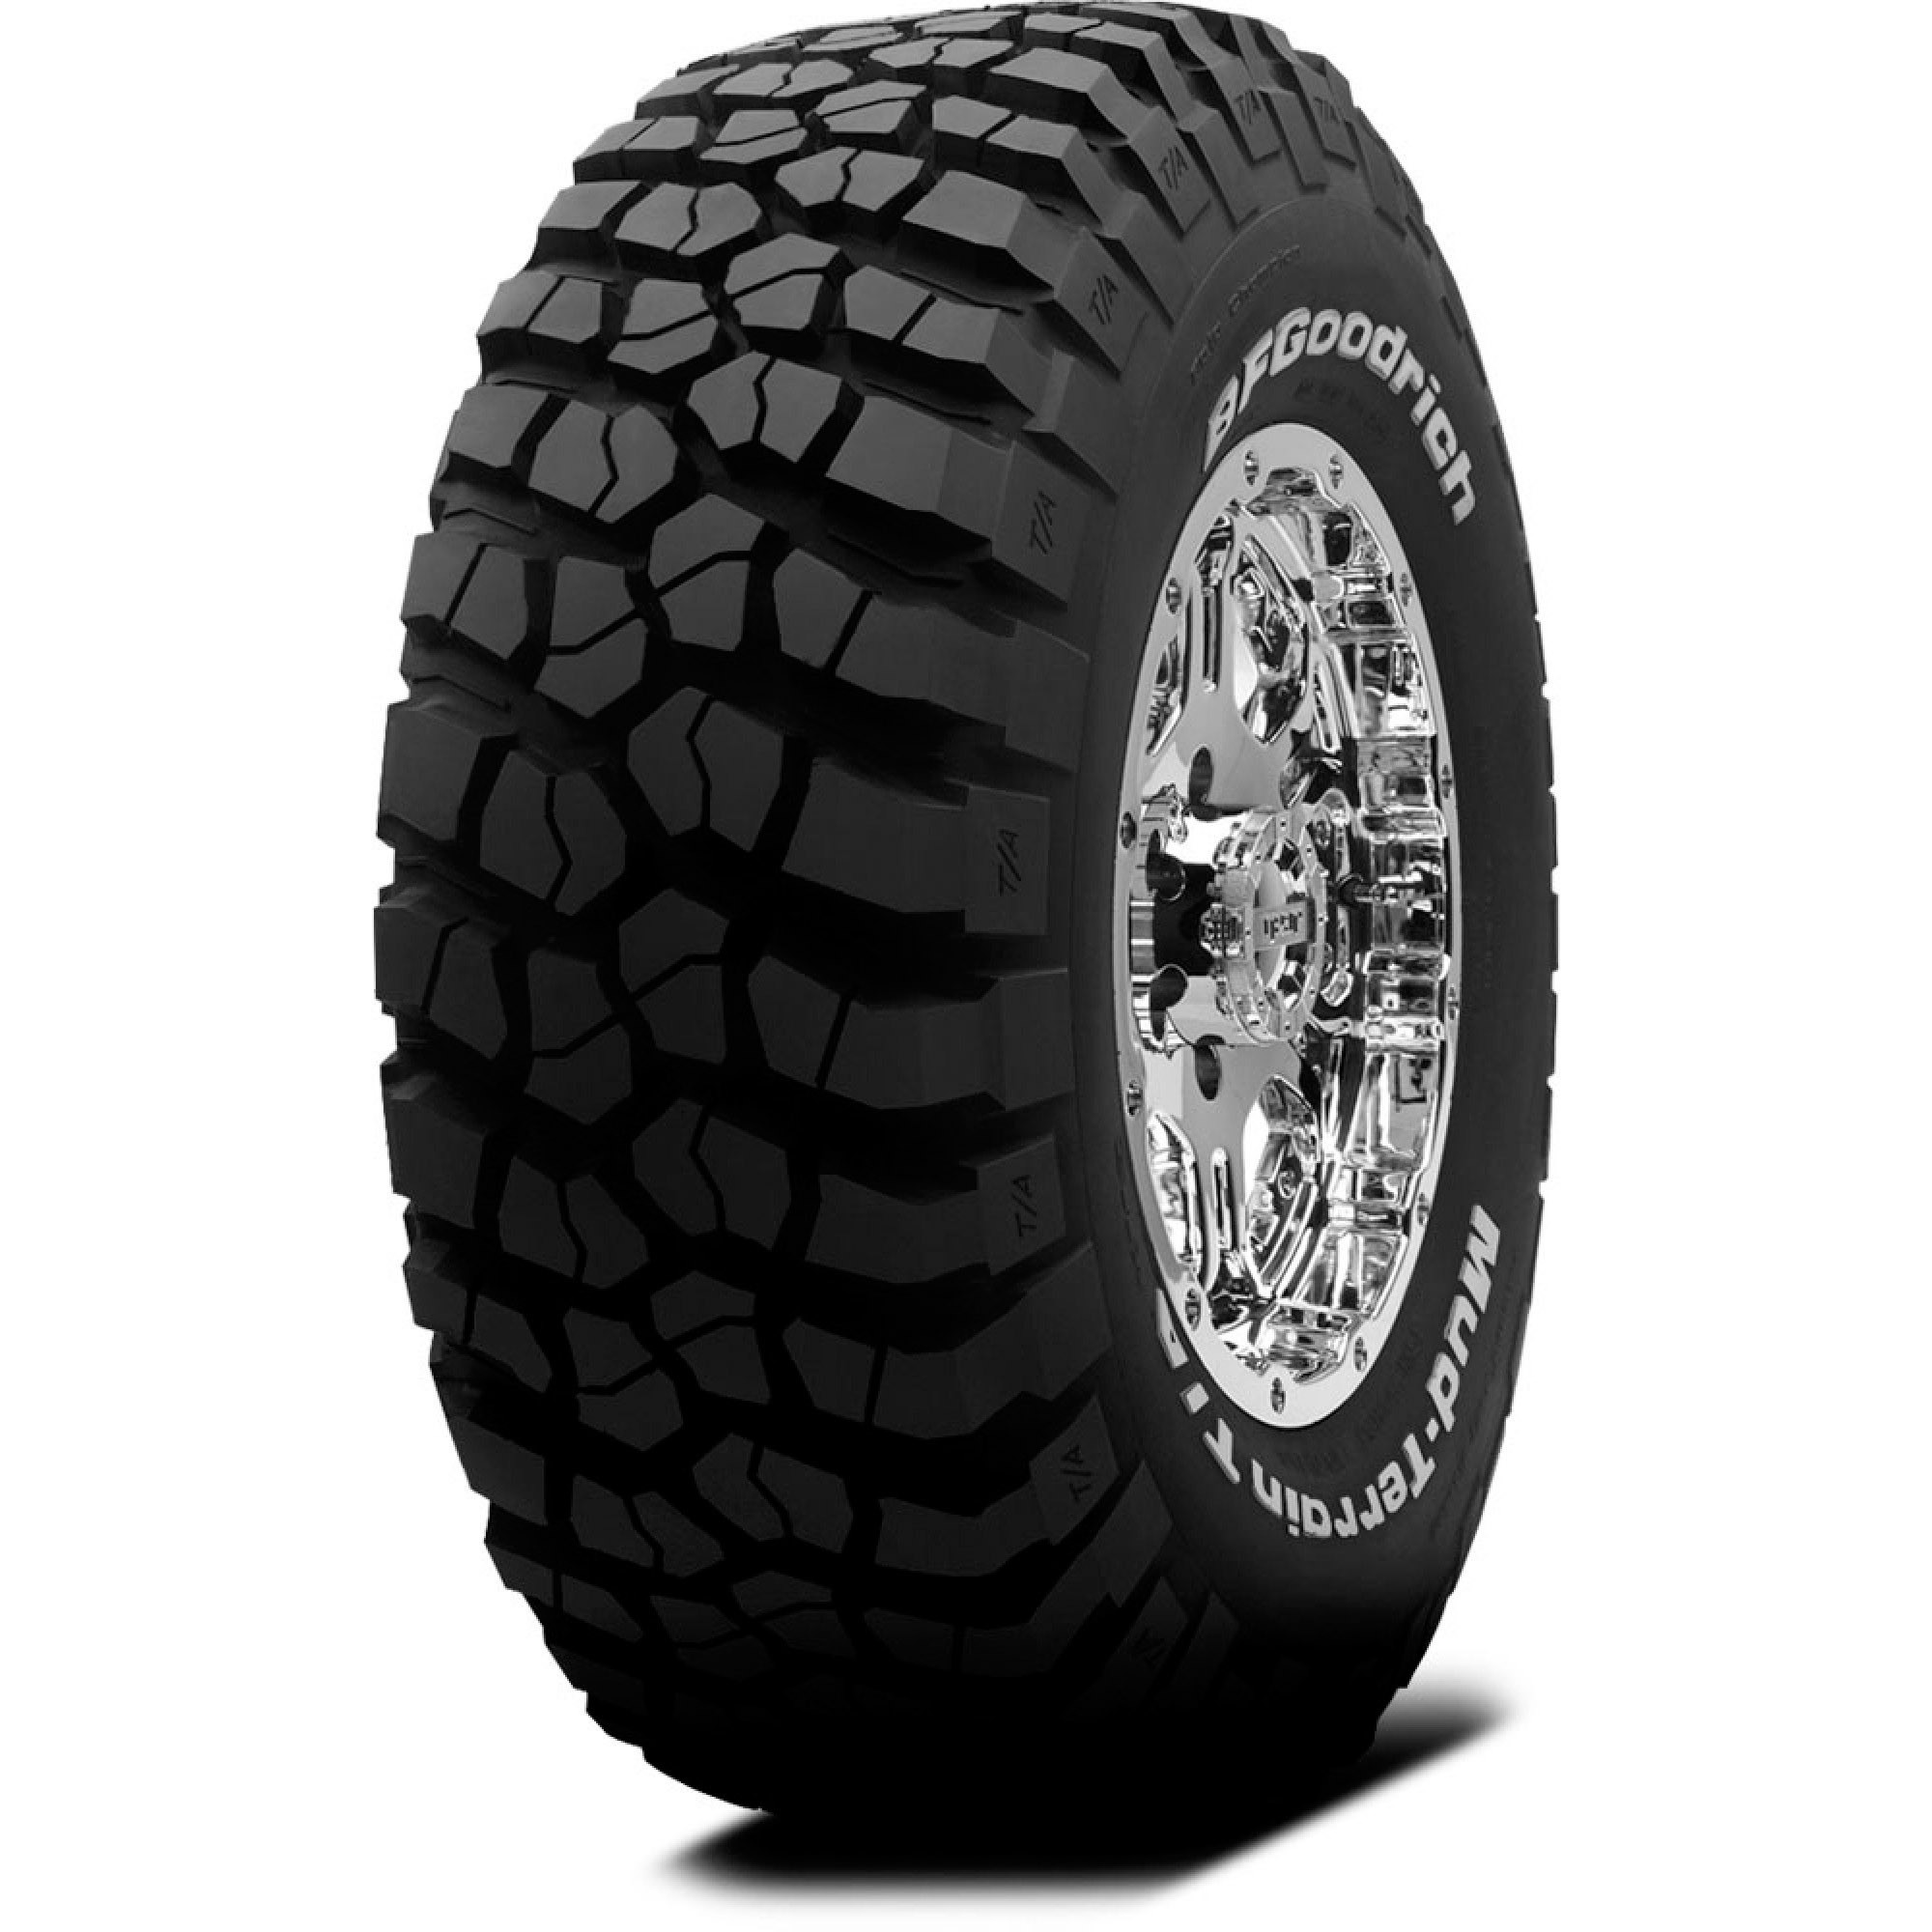 Шина BF Goodrich MT KM2 235/85 R16